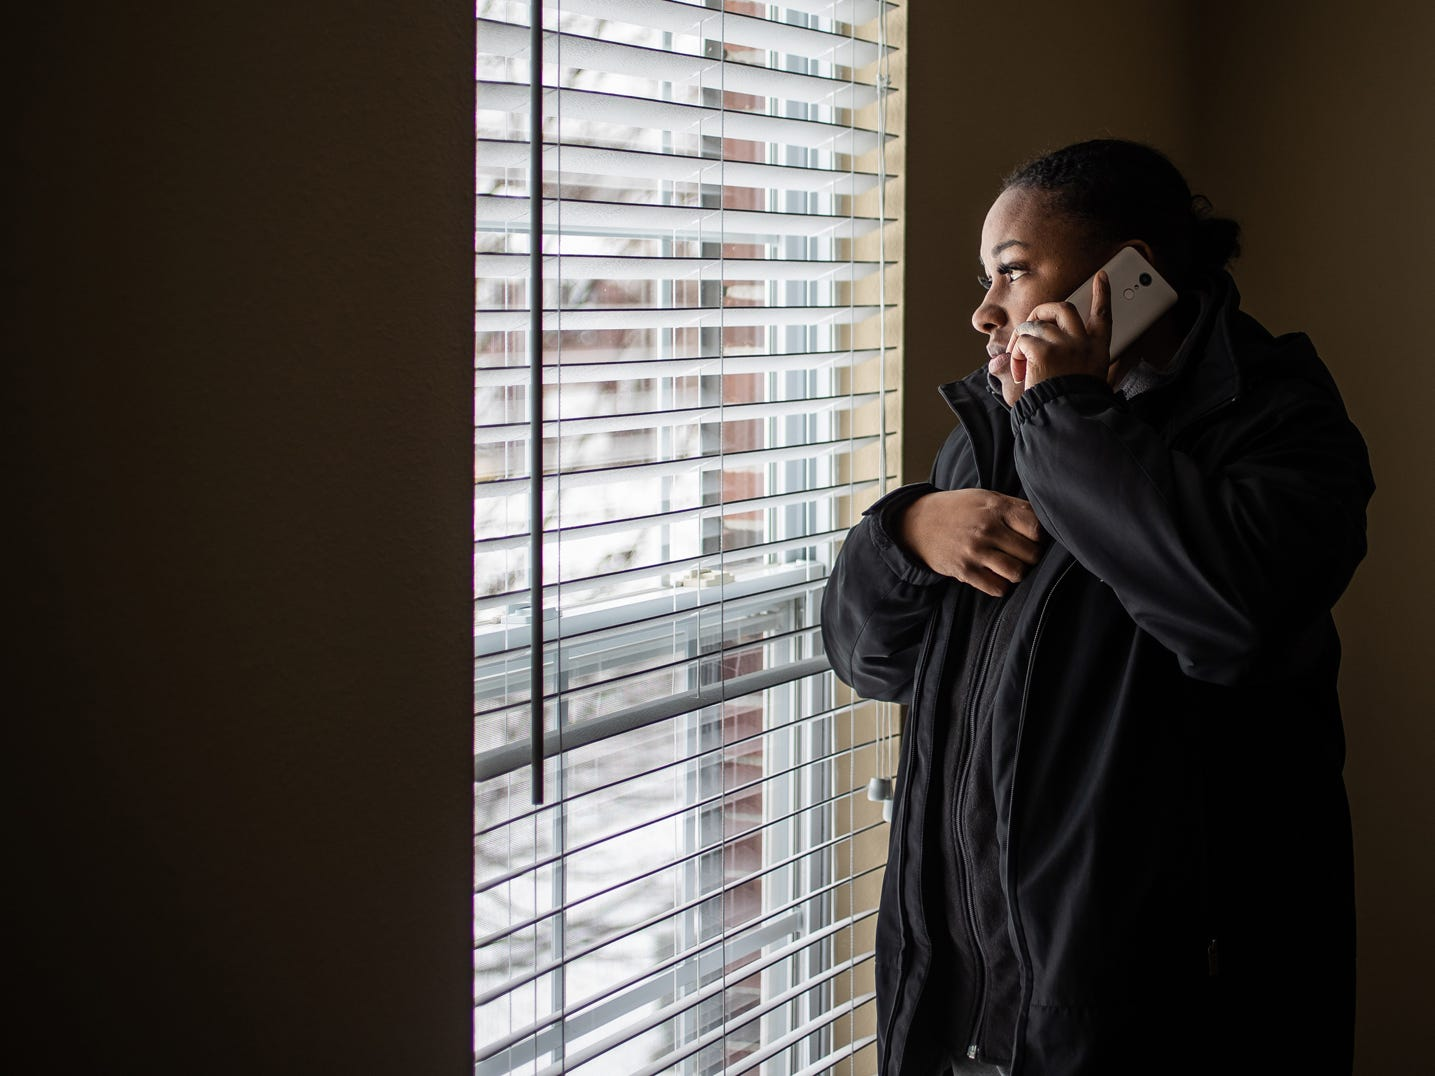 'I don't have anybody but you': A mother on the brink of homelessness calls me for help